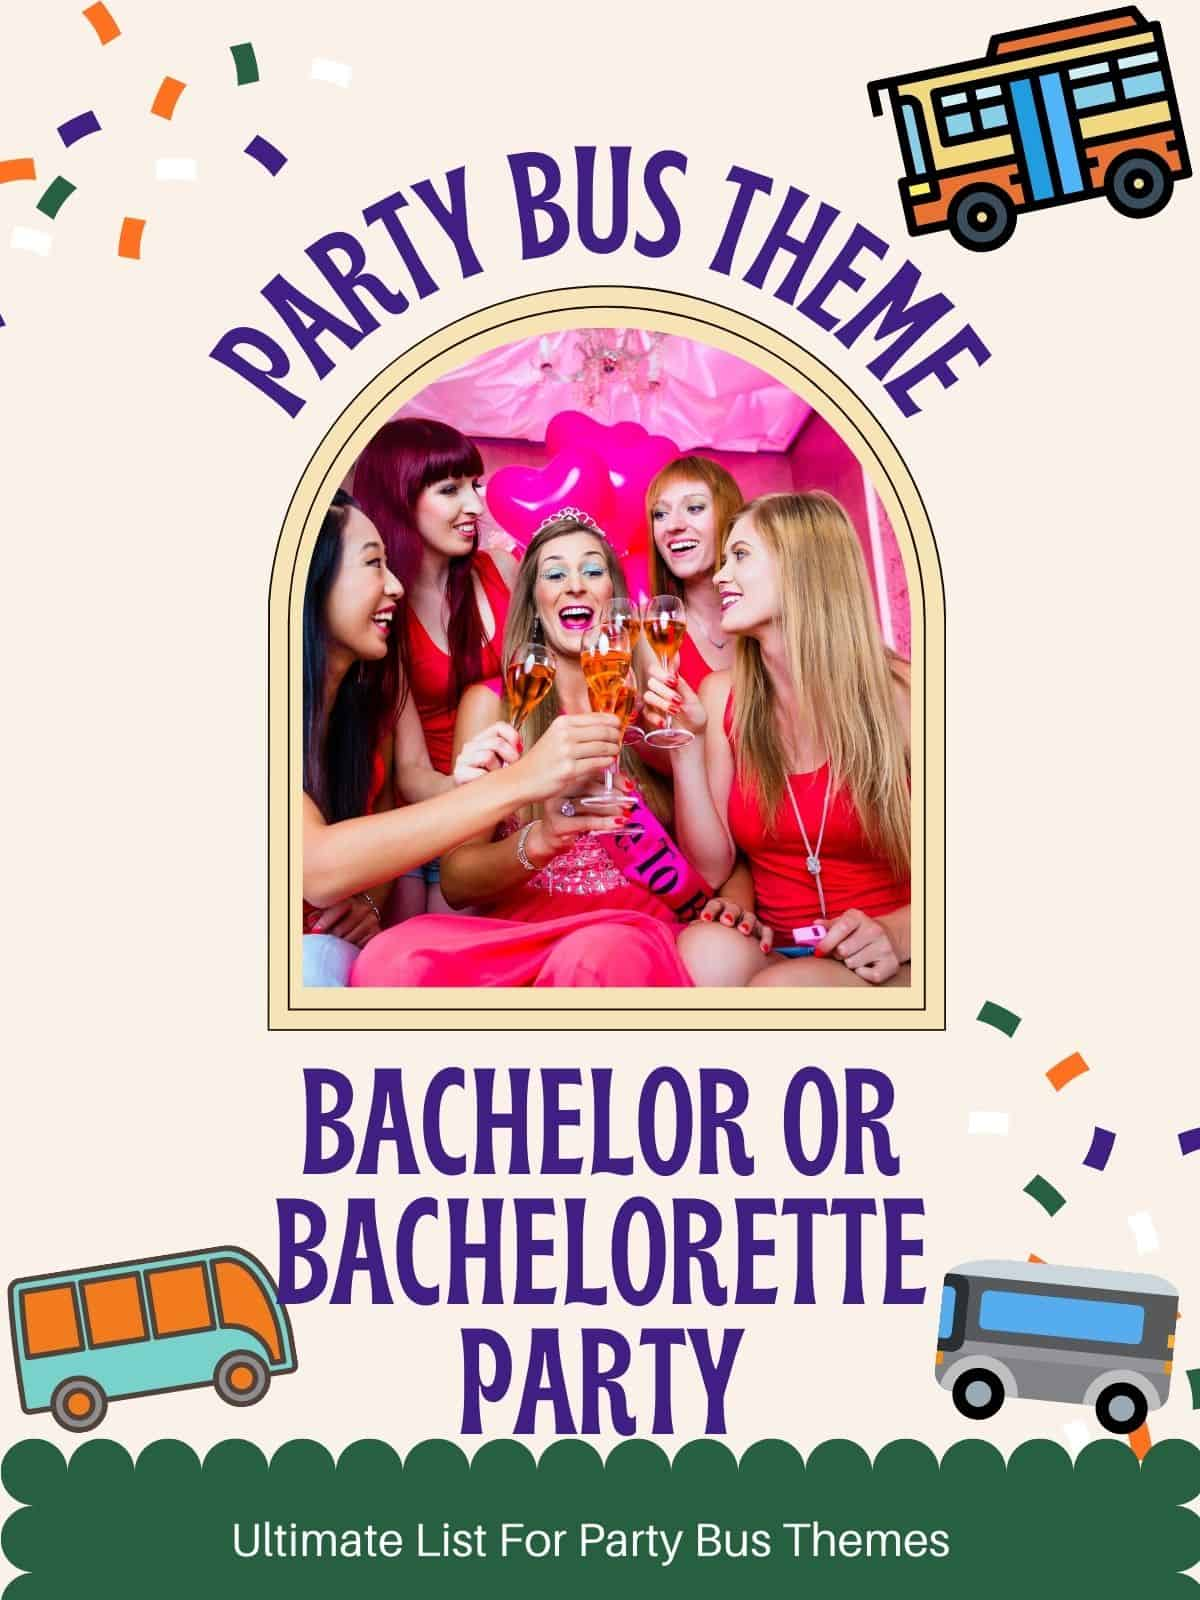 bachelorette party girls toasting